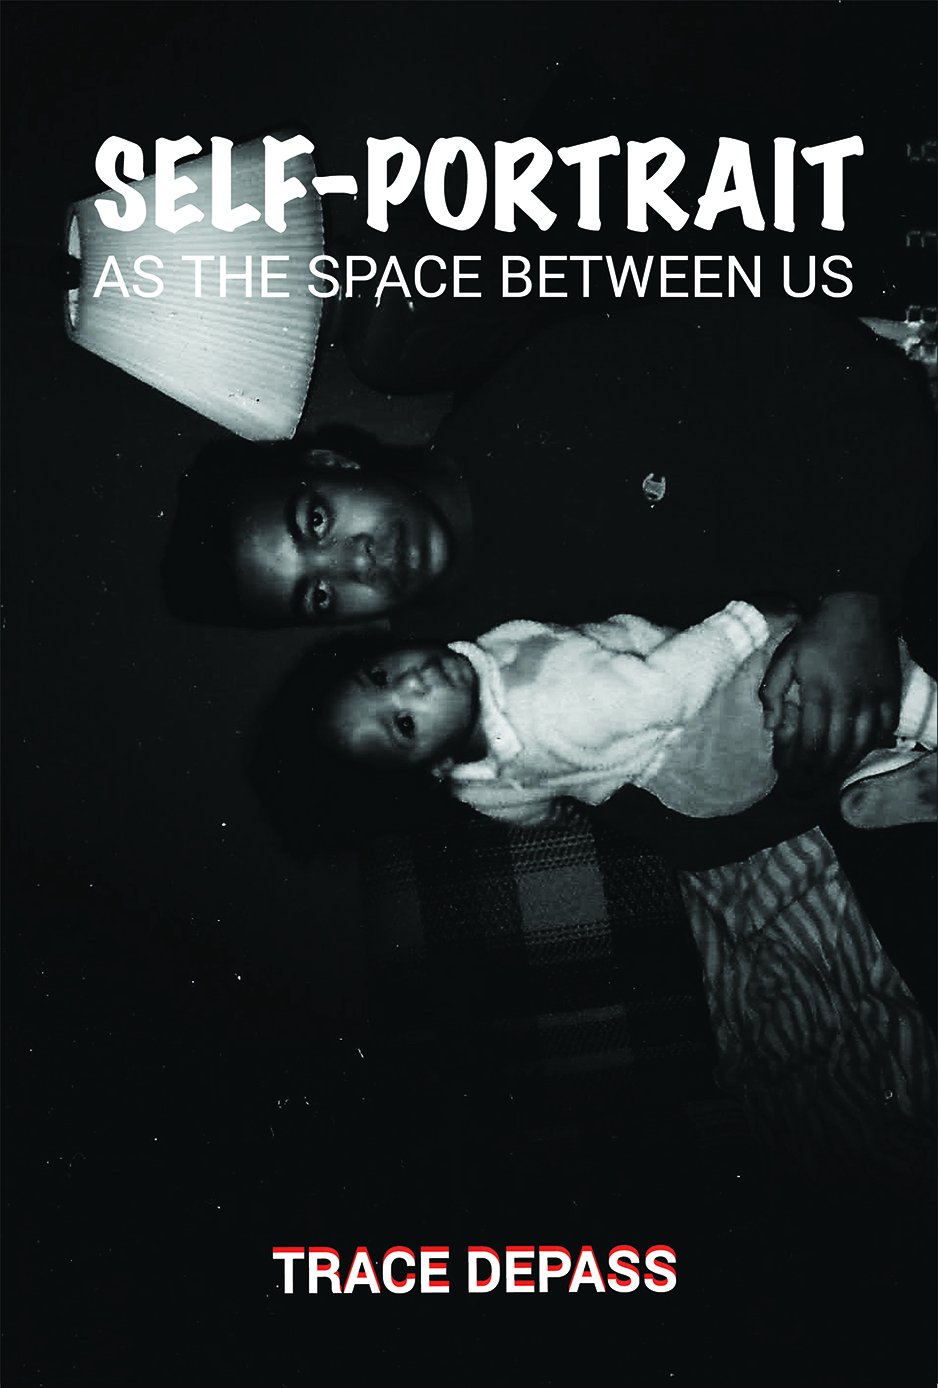 Self-portrait as the space between us